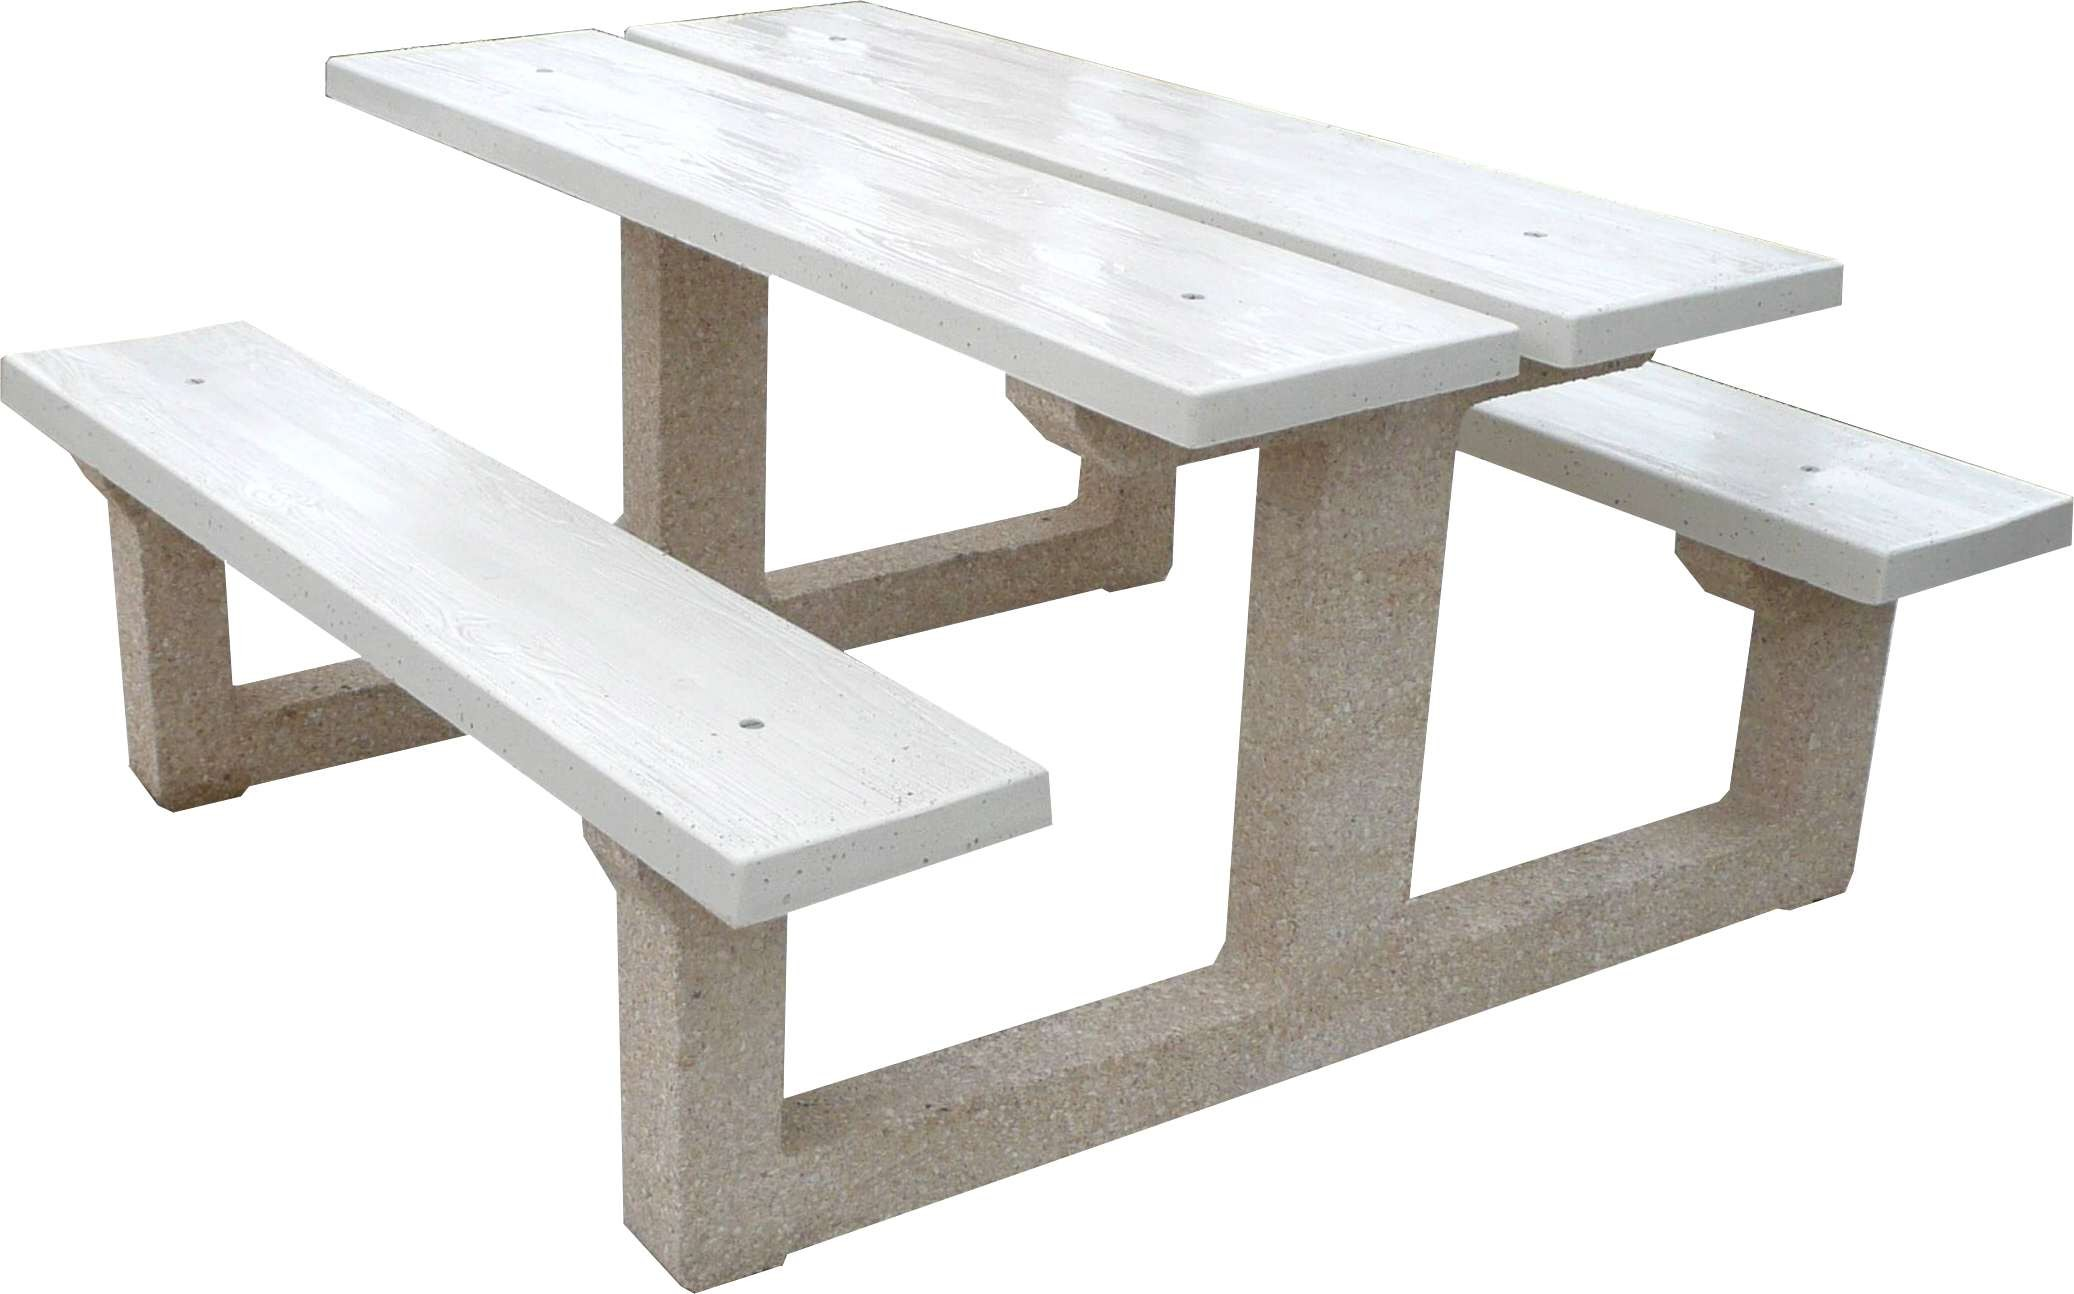 Table De Jardin Beton Table Beton Bois Table De Jardin Aluminium Et Composite